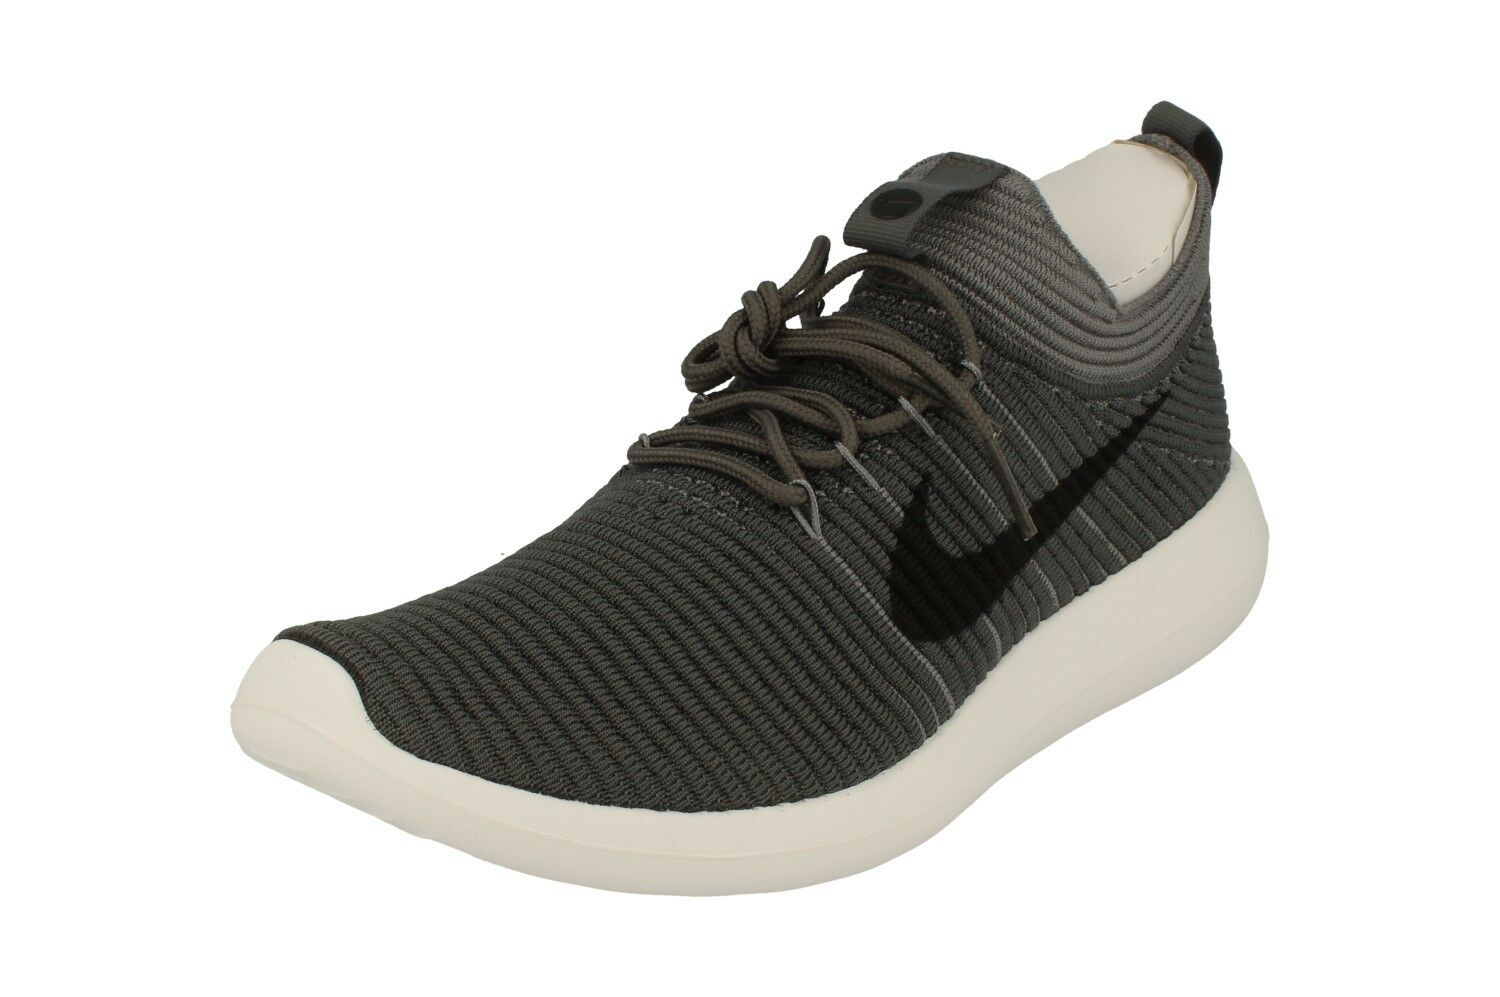 Nike Roshe Two Flyknit V2 Mens Running Trainers 918263 Sneakers Shoes 001 Brand discount